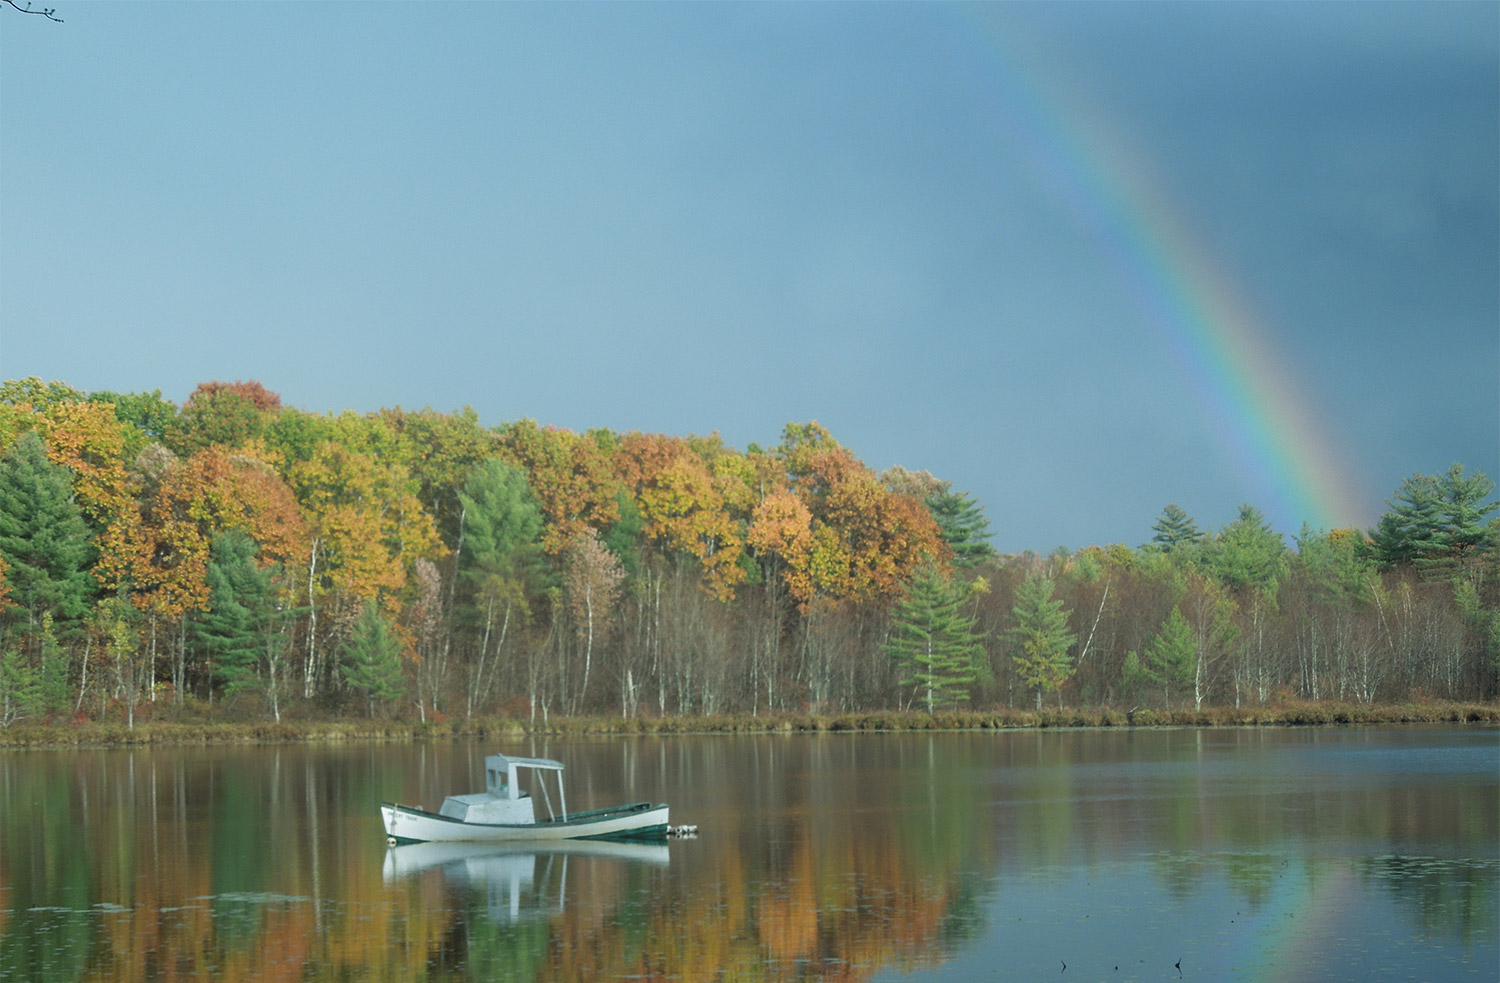 Waterboro's Heidi Reed may still be looking for that pot of gold, but York County's lake country sure glitters.